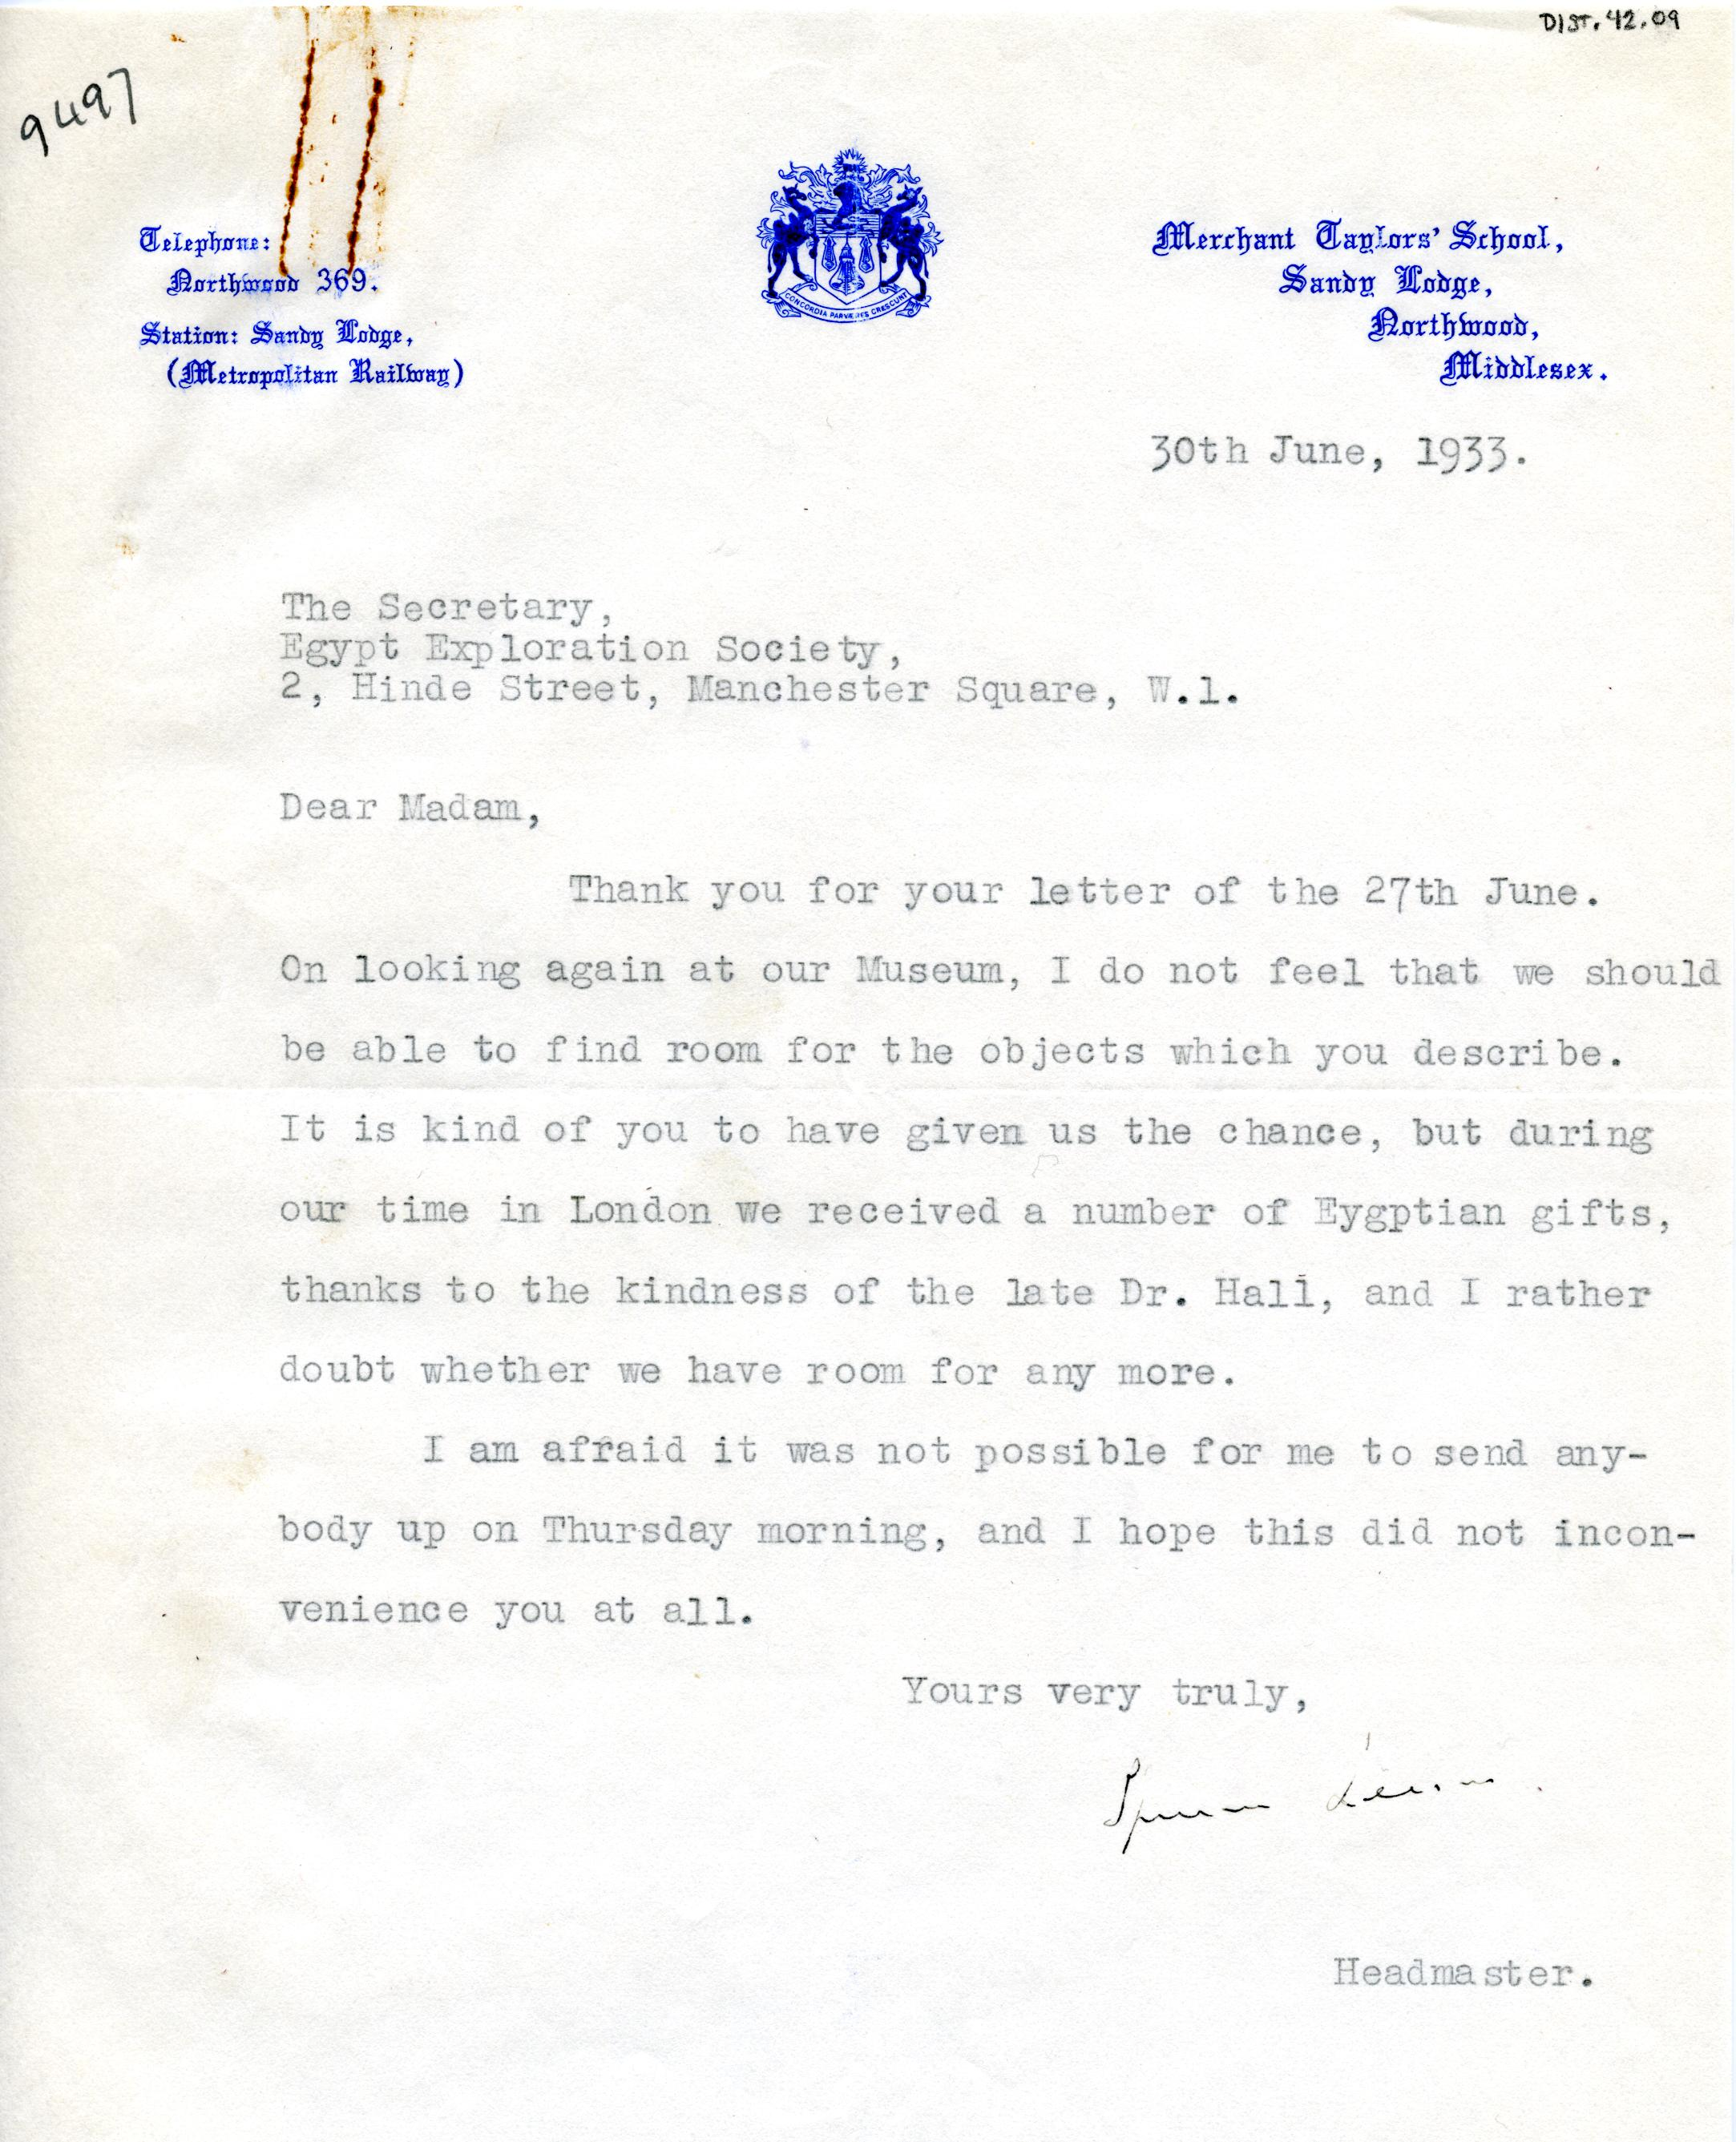 1922-71 Miscellaneous correspondence with museums DIST.42.09